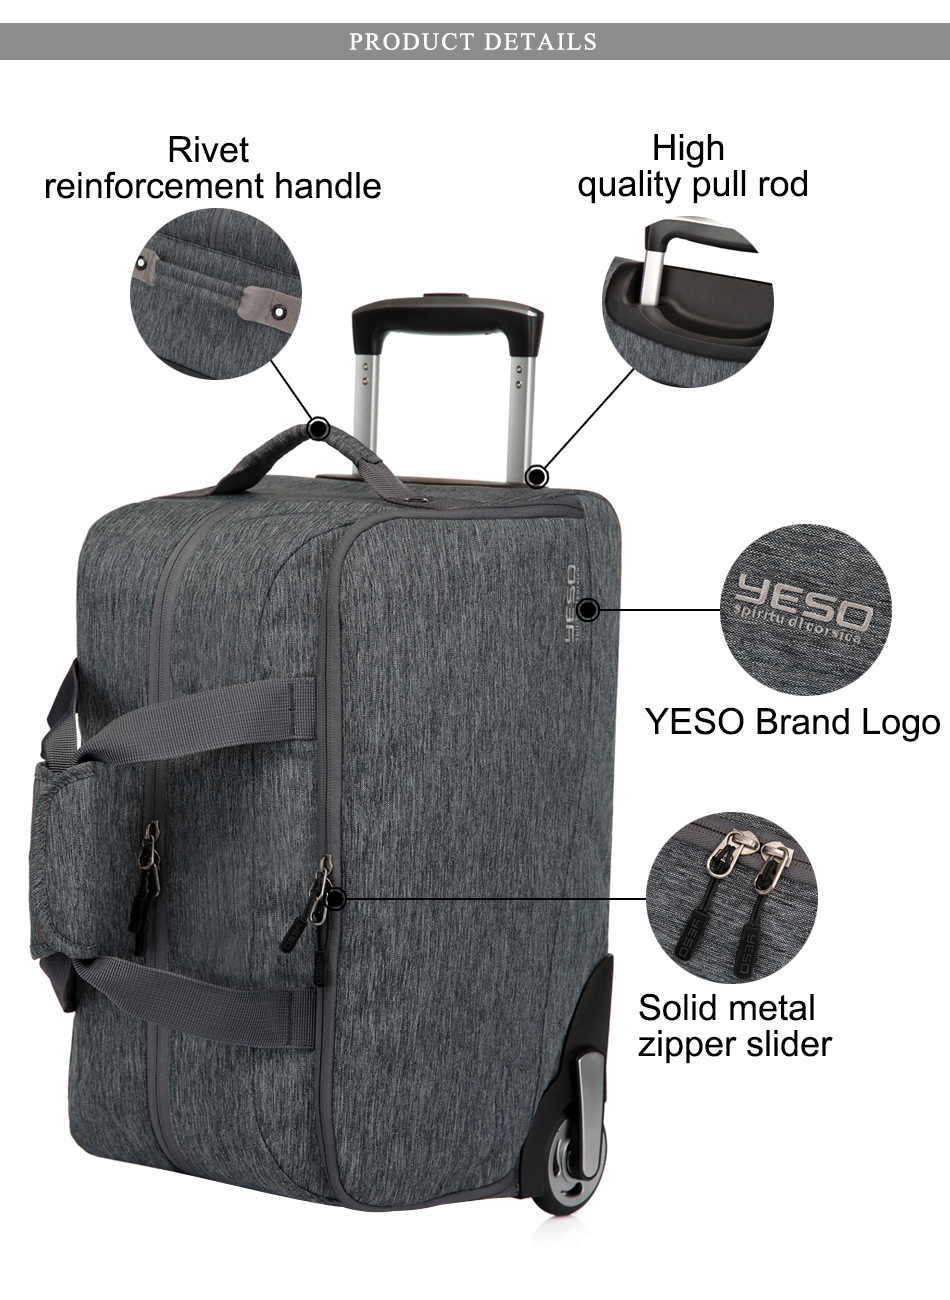 f76c2d8ae0bc YESO Trolley Travel Bag Unisex Hand Luggage 20 inch 32L Rolling Duffle Bags  Waterproof Oxford Suitcase Wheels Carry On Luggage 1Luggage 2Travel bags ...